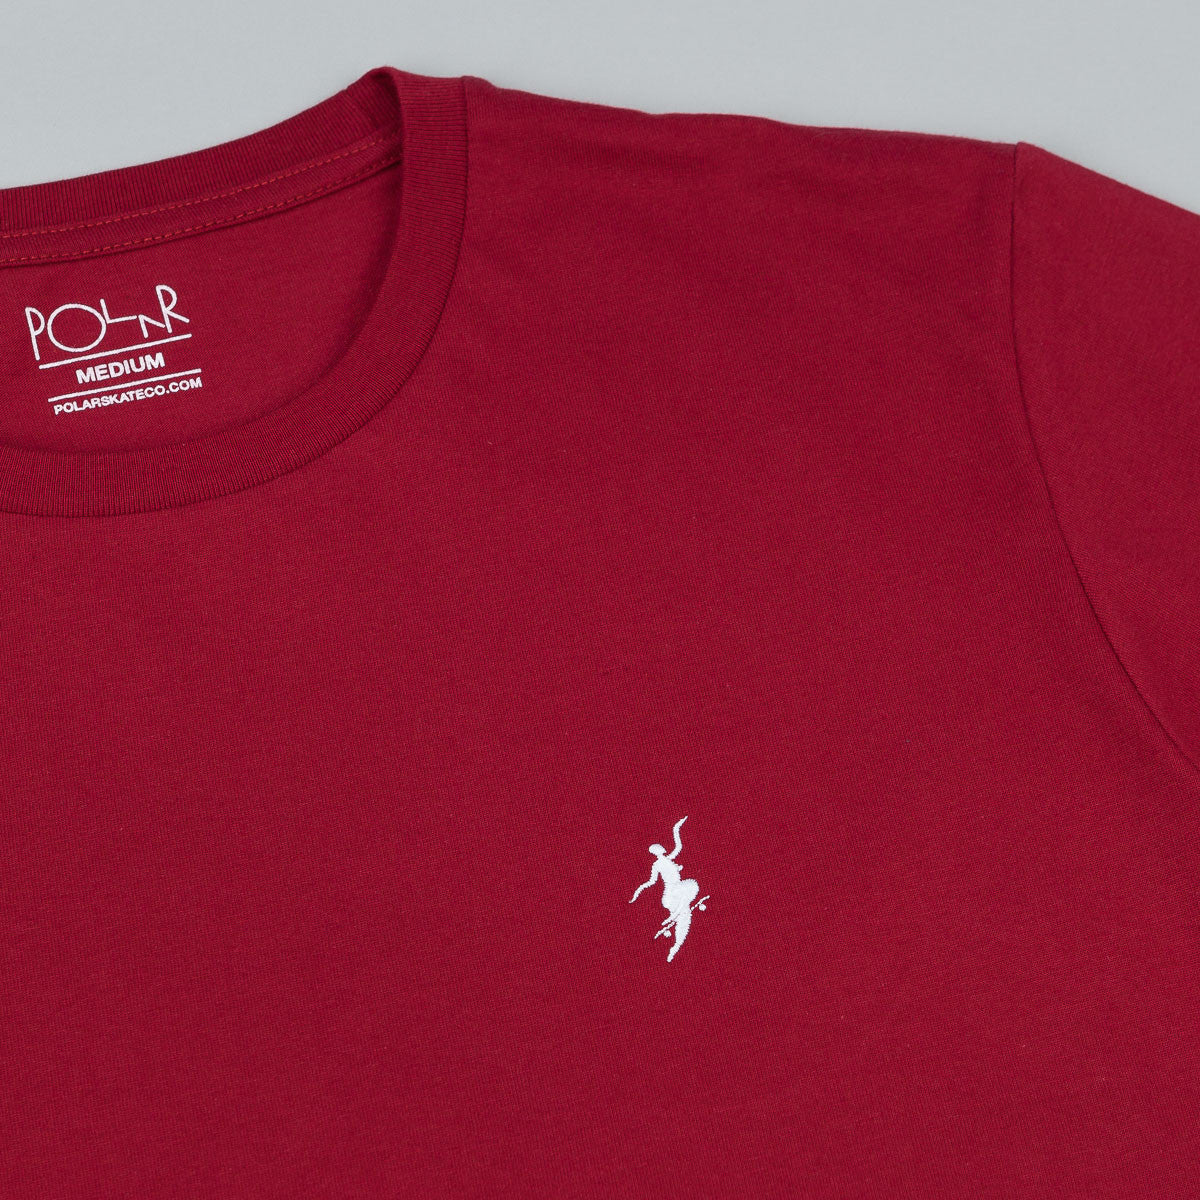 Polar No Comply T-Shirt - Red Wine / White